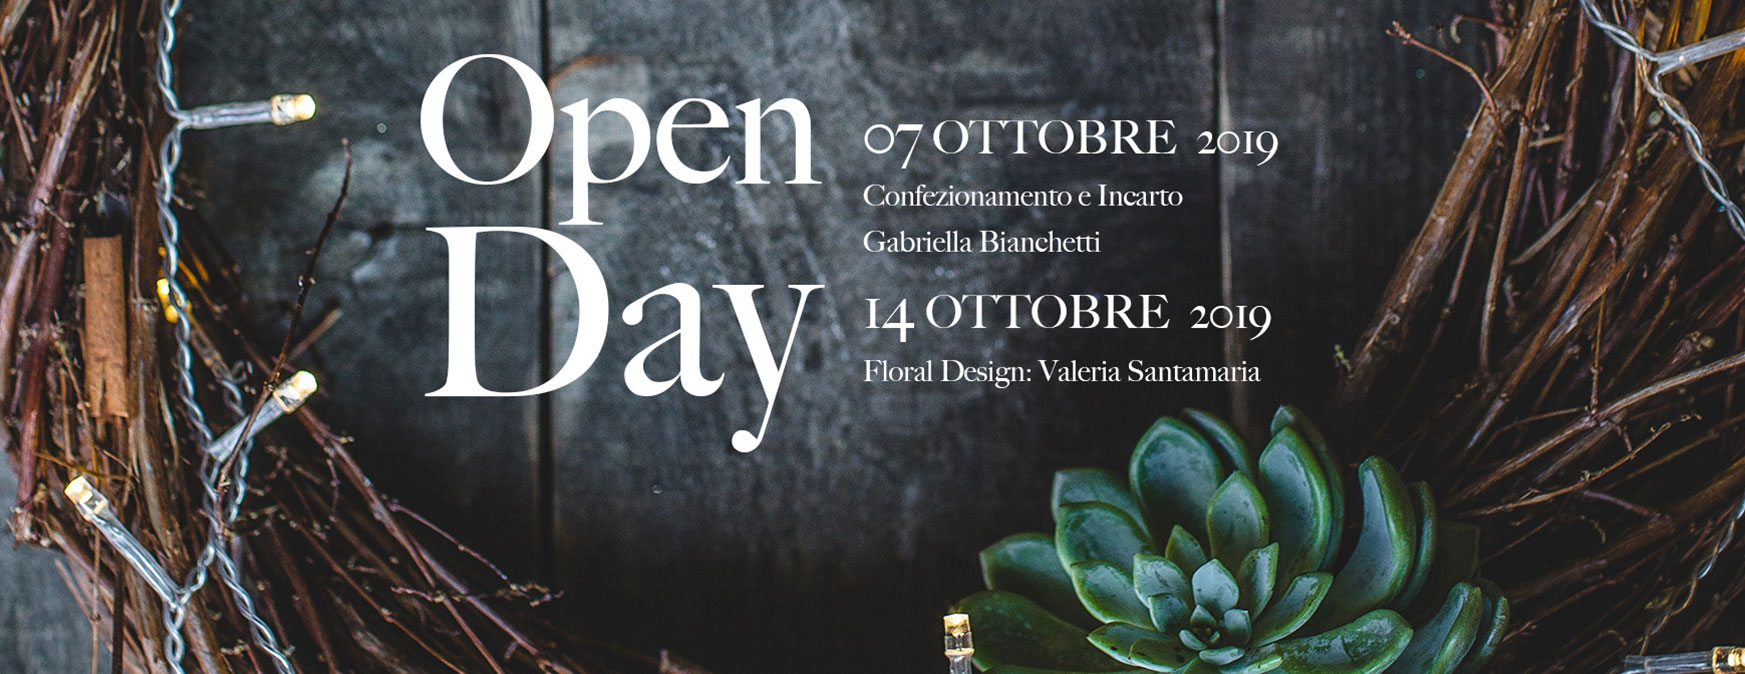 Open Day natale 2019